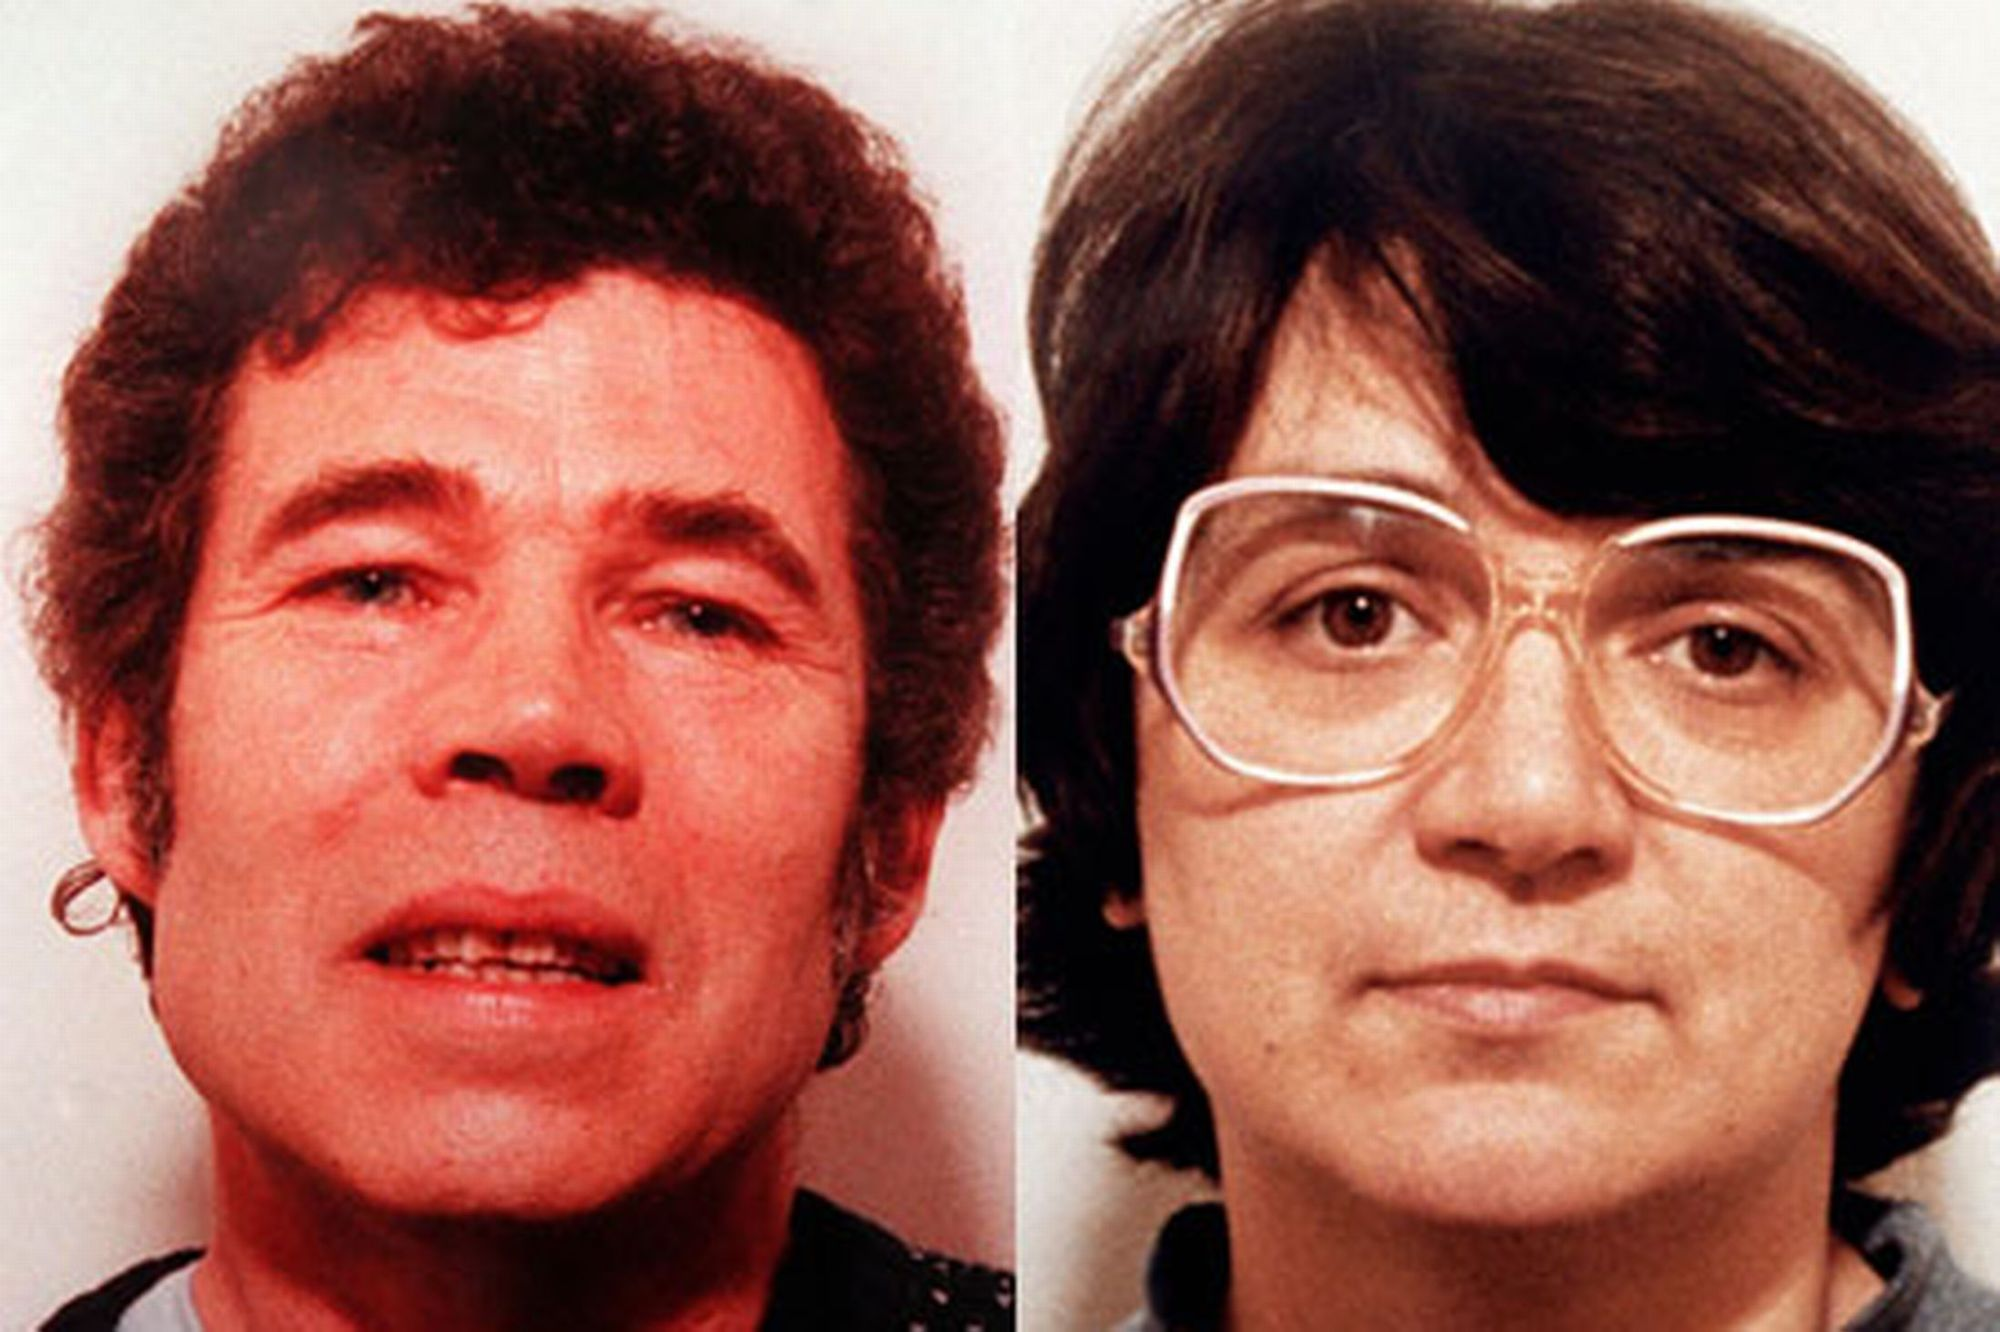 Fred_and_Rosemary_West2.jpg